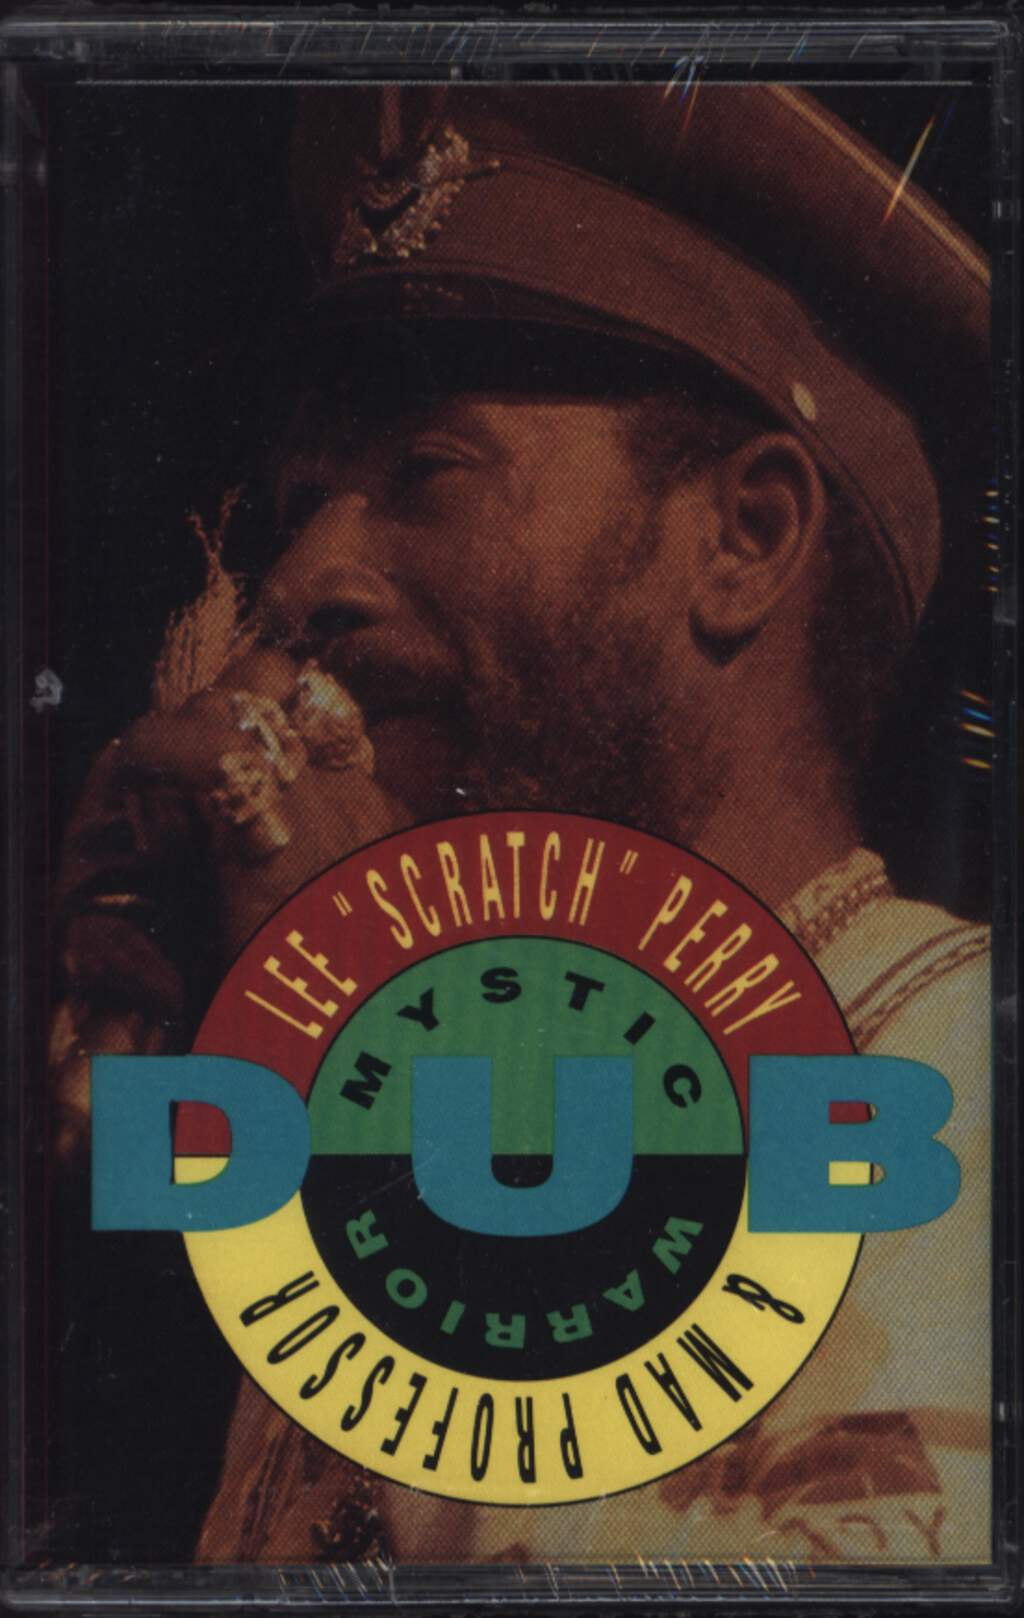 Lee Perry: Mystic Warrior In Dub, Compact Cassette